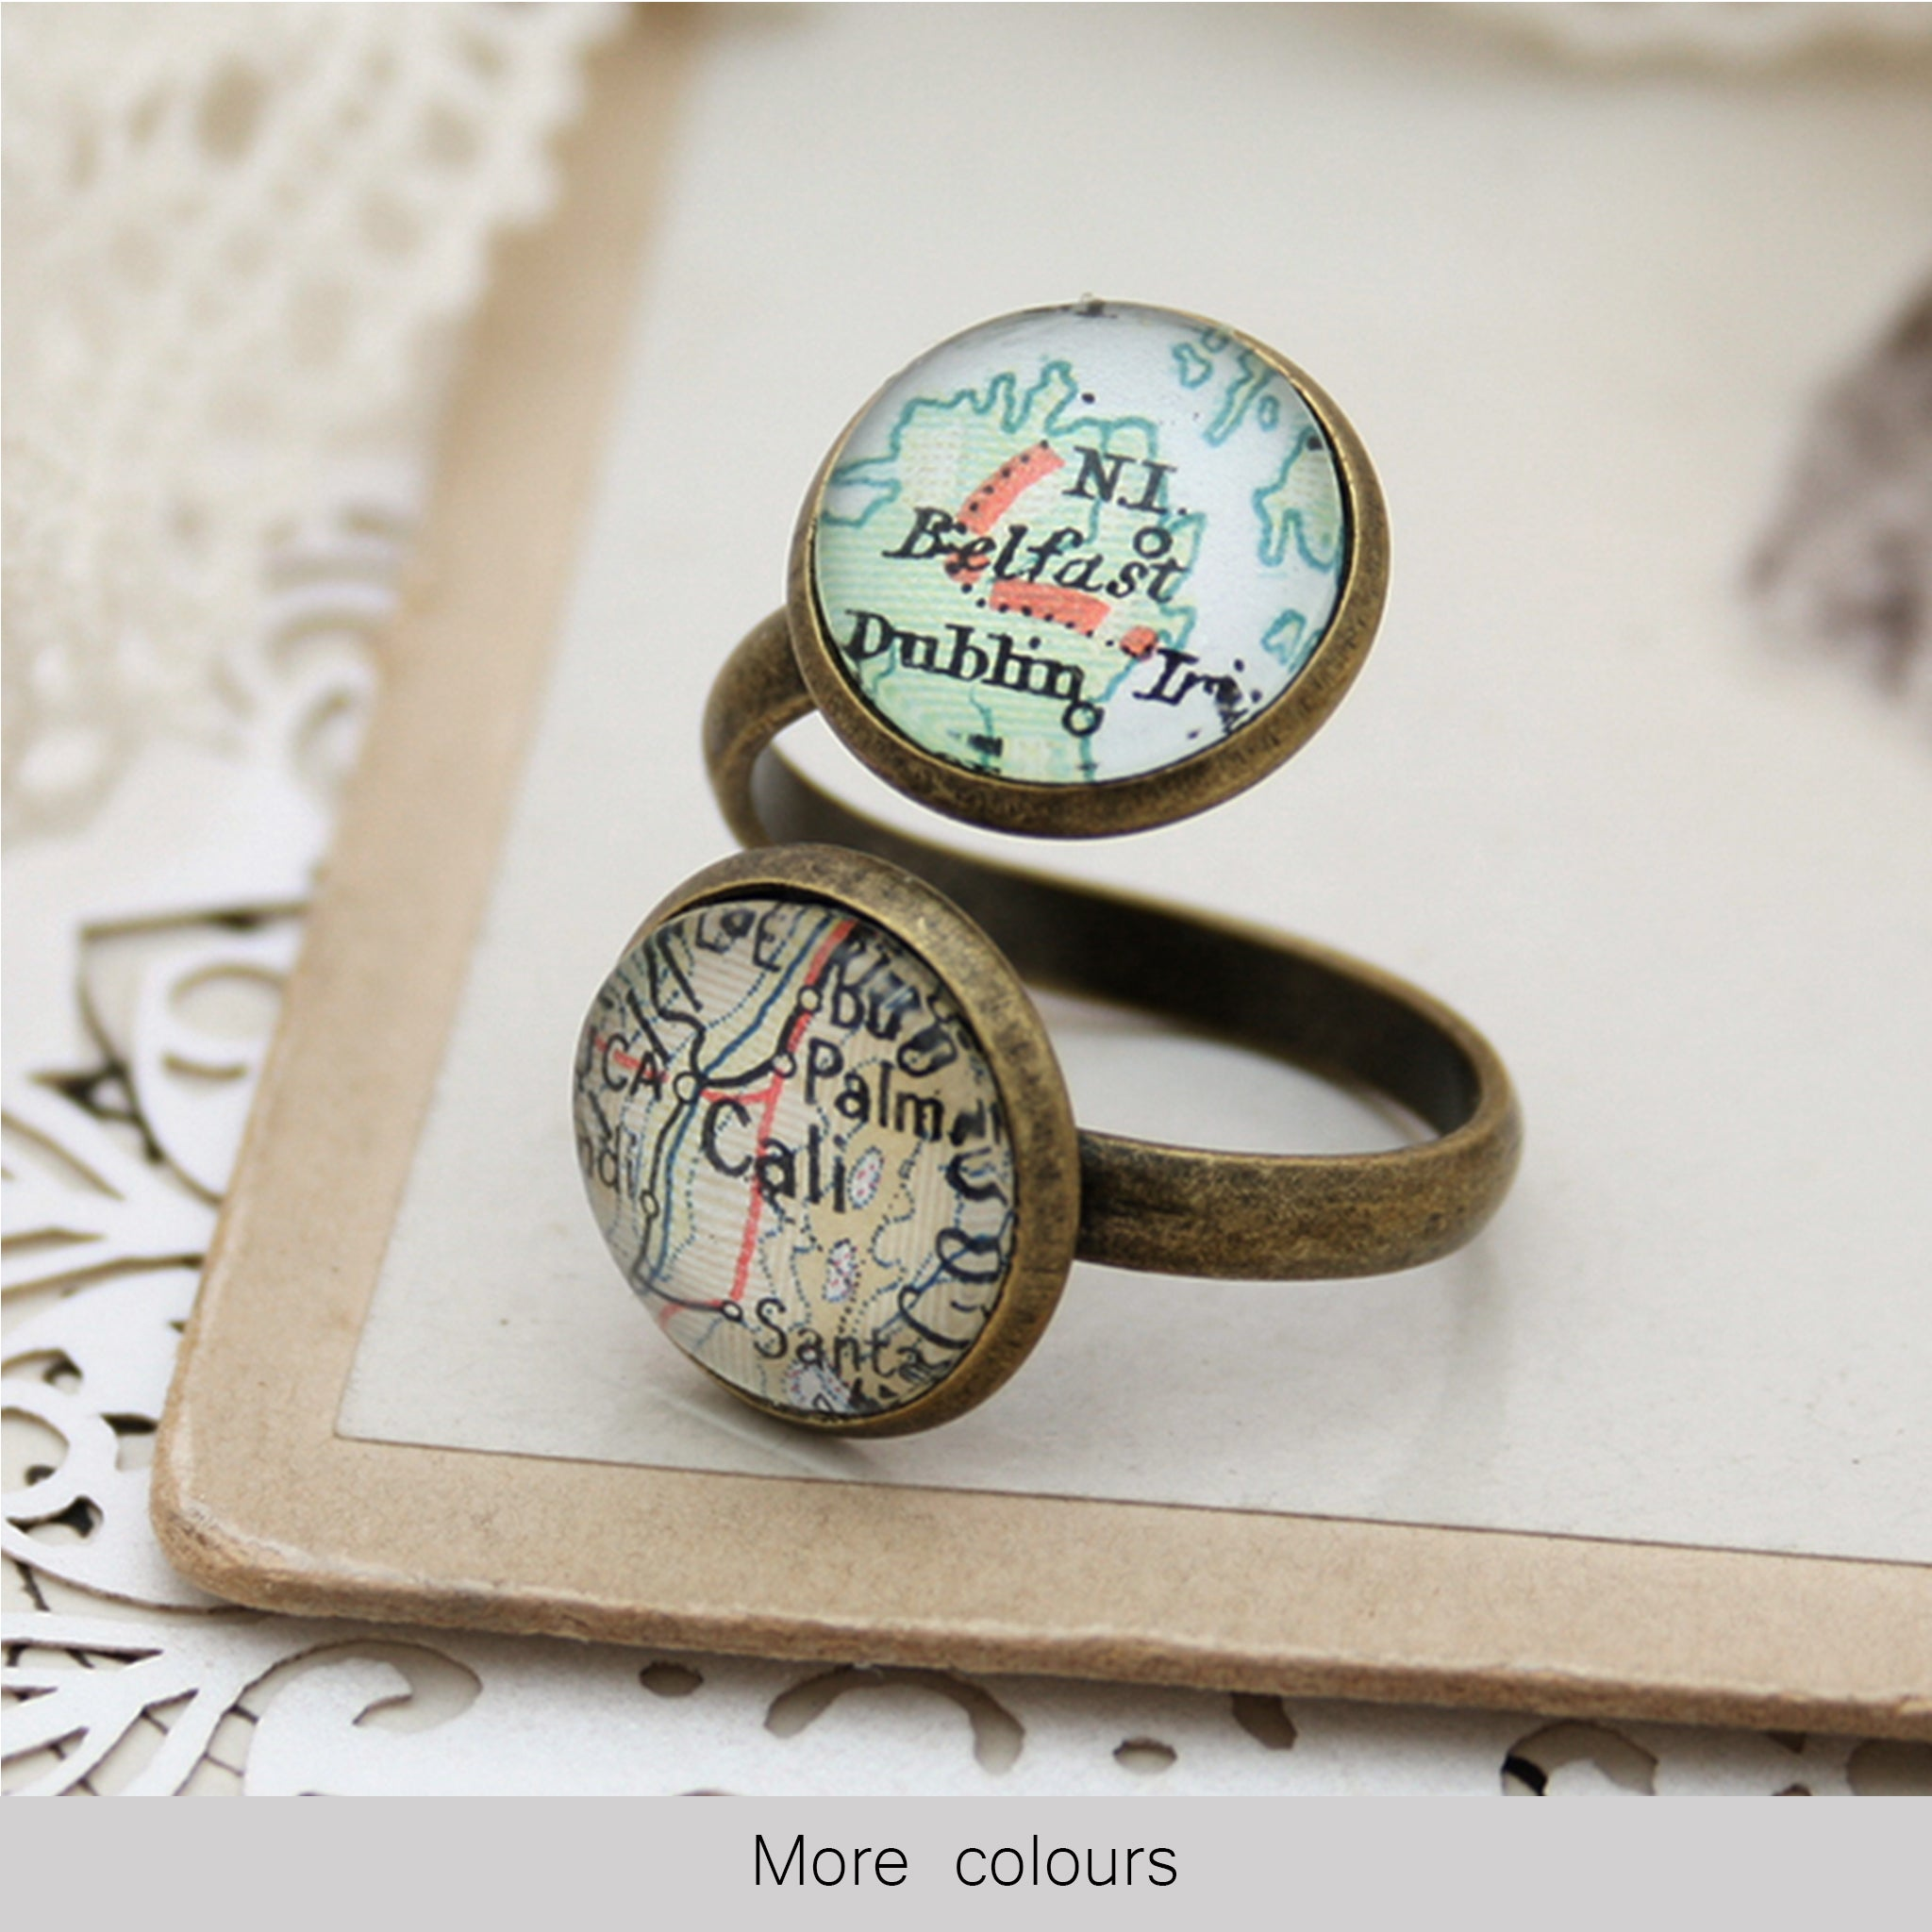 Thumb ring in antique bronze color featuring to custom map locations